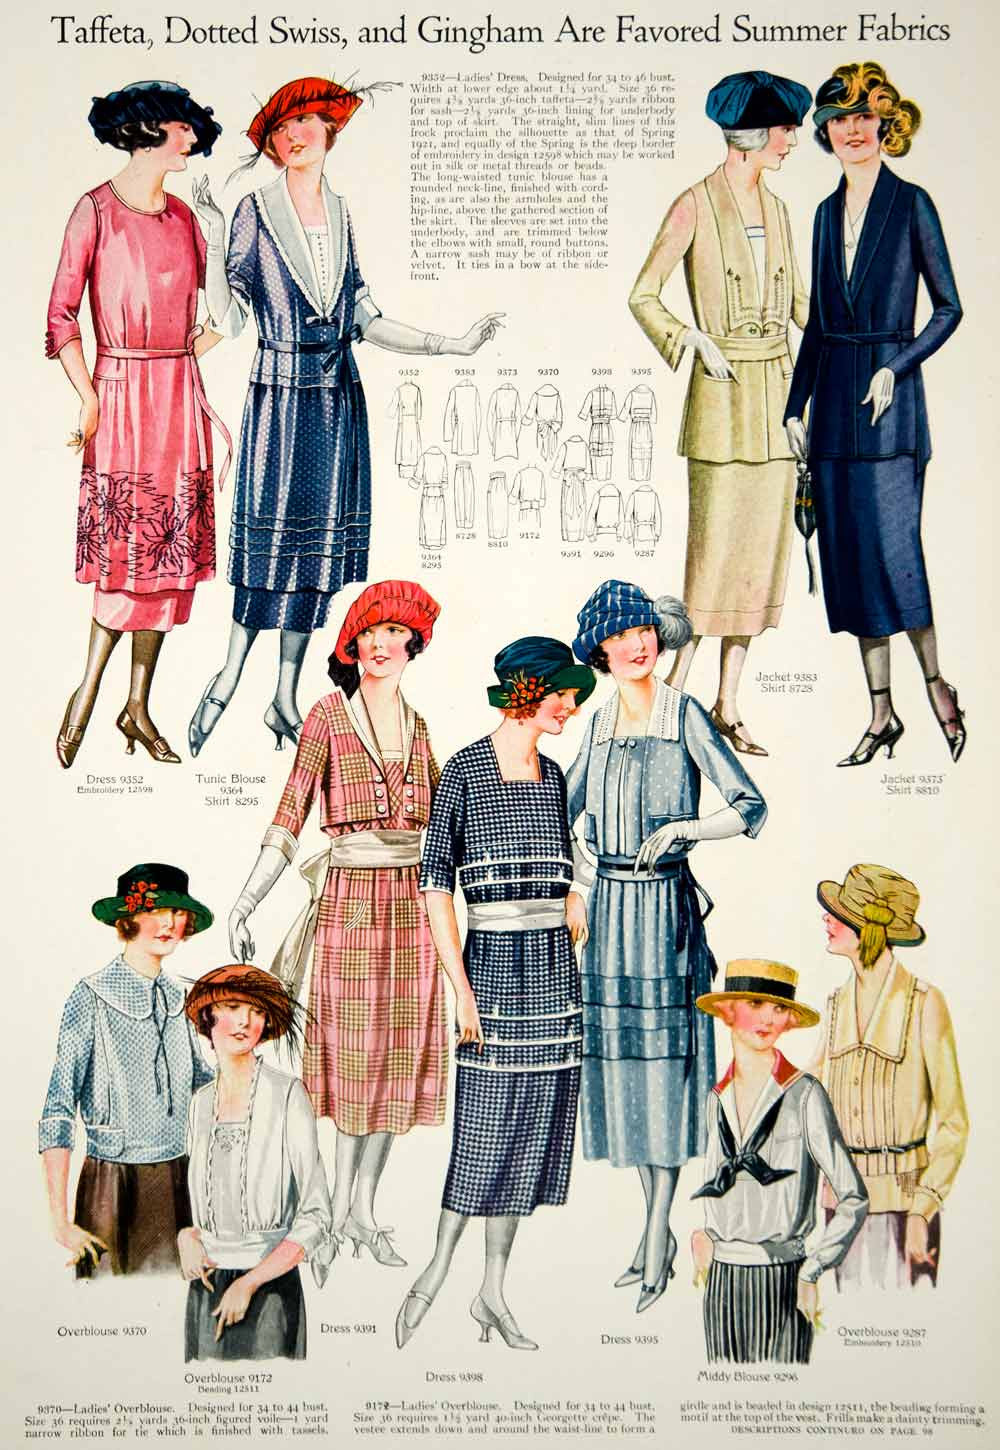 1921 Print Flapper Era Fashion Illustrations Women Spring Dresses Turban Hats - Period Paper  - 4